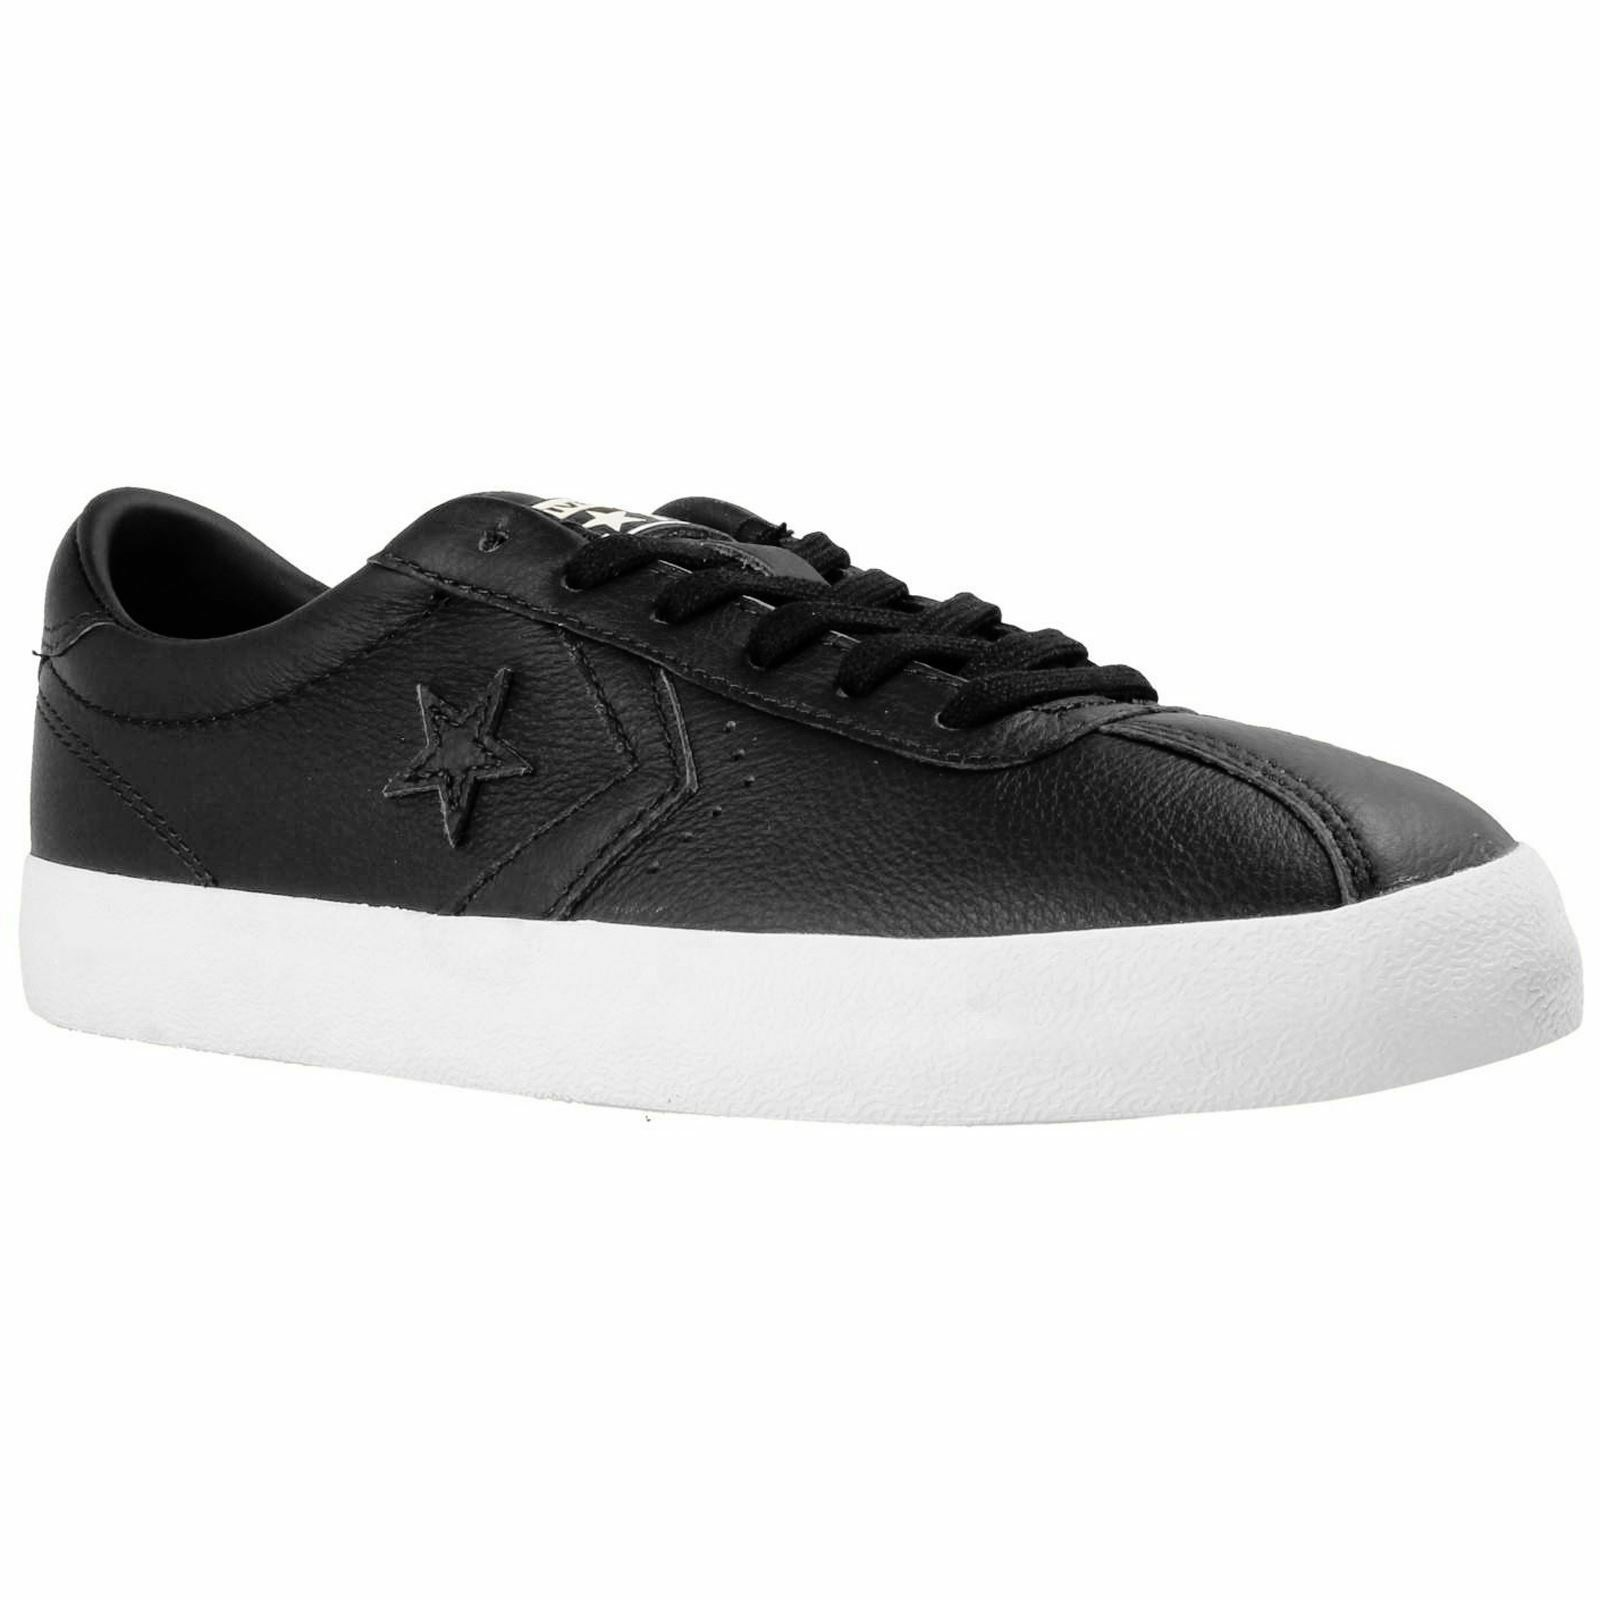 Converse Breakpoint Ox Black White Unisex Leather Casual Low-top Trainers